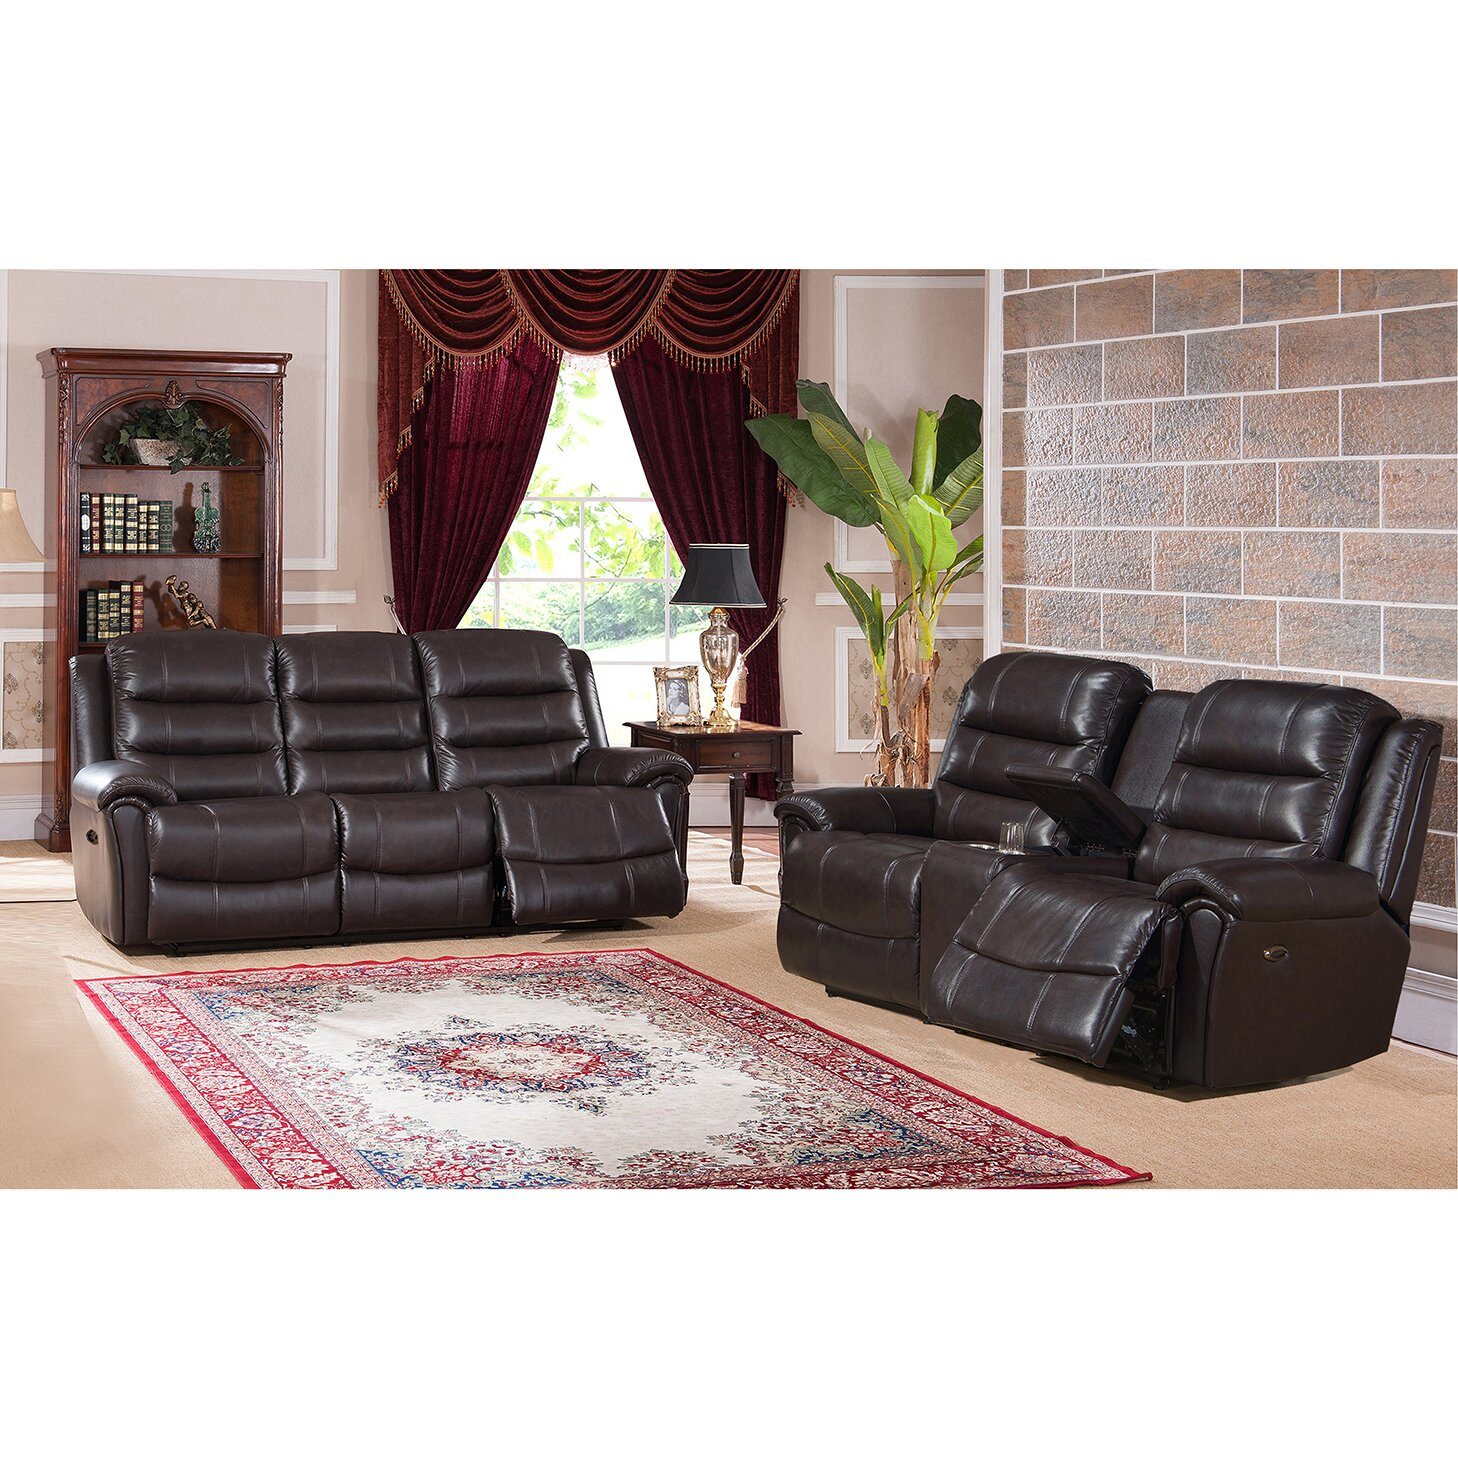 Amax astoria leather recliner sofa and loveseat set wayfair for Leather sofa and loveseat set